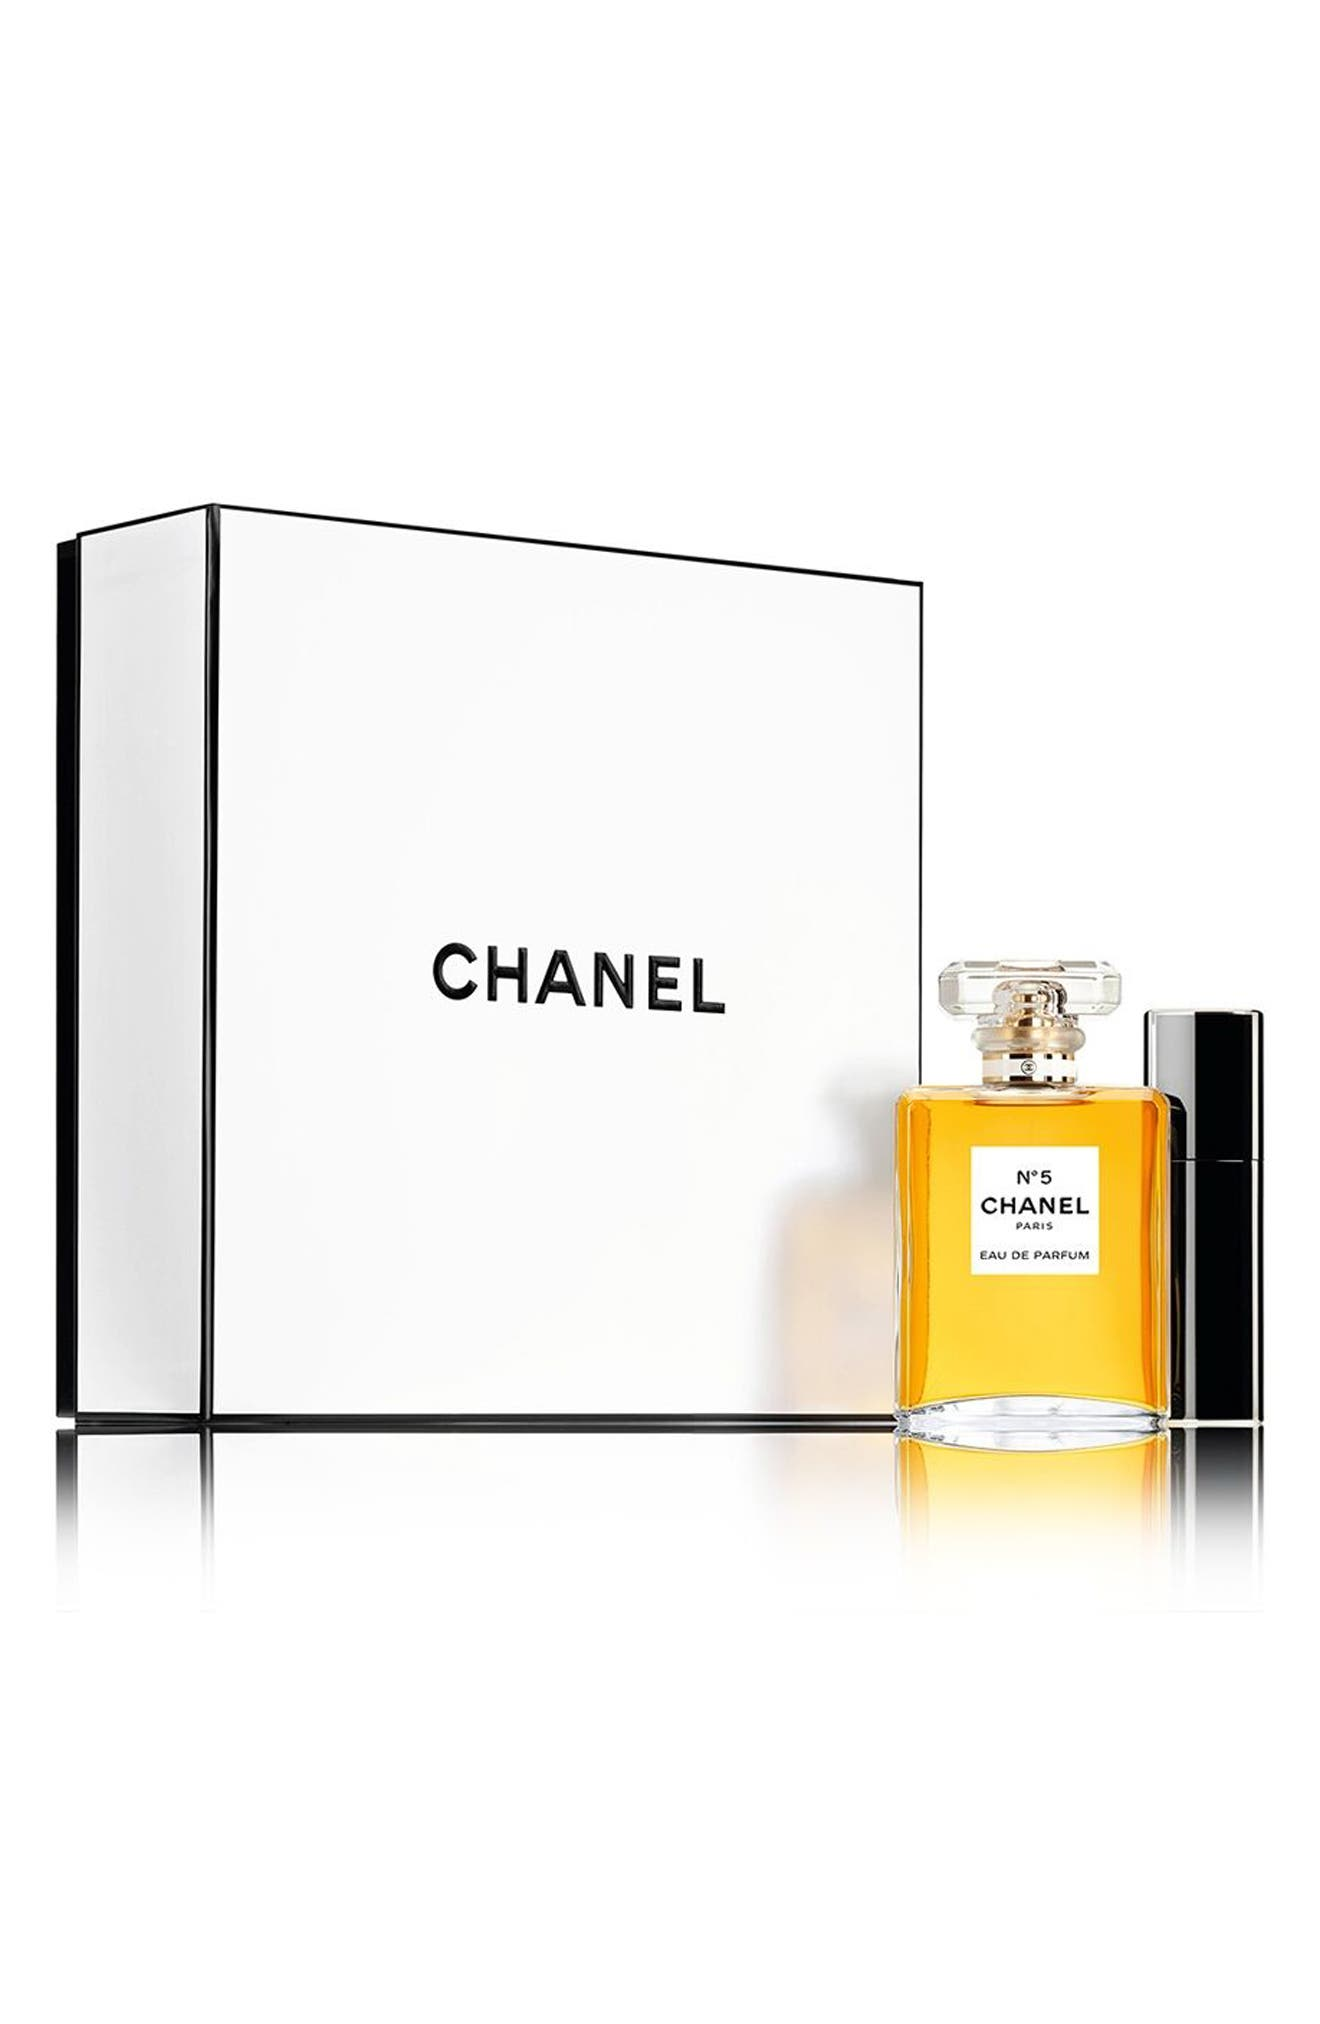 CHANEL N°5 Eau de Parfum Set